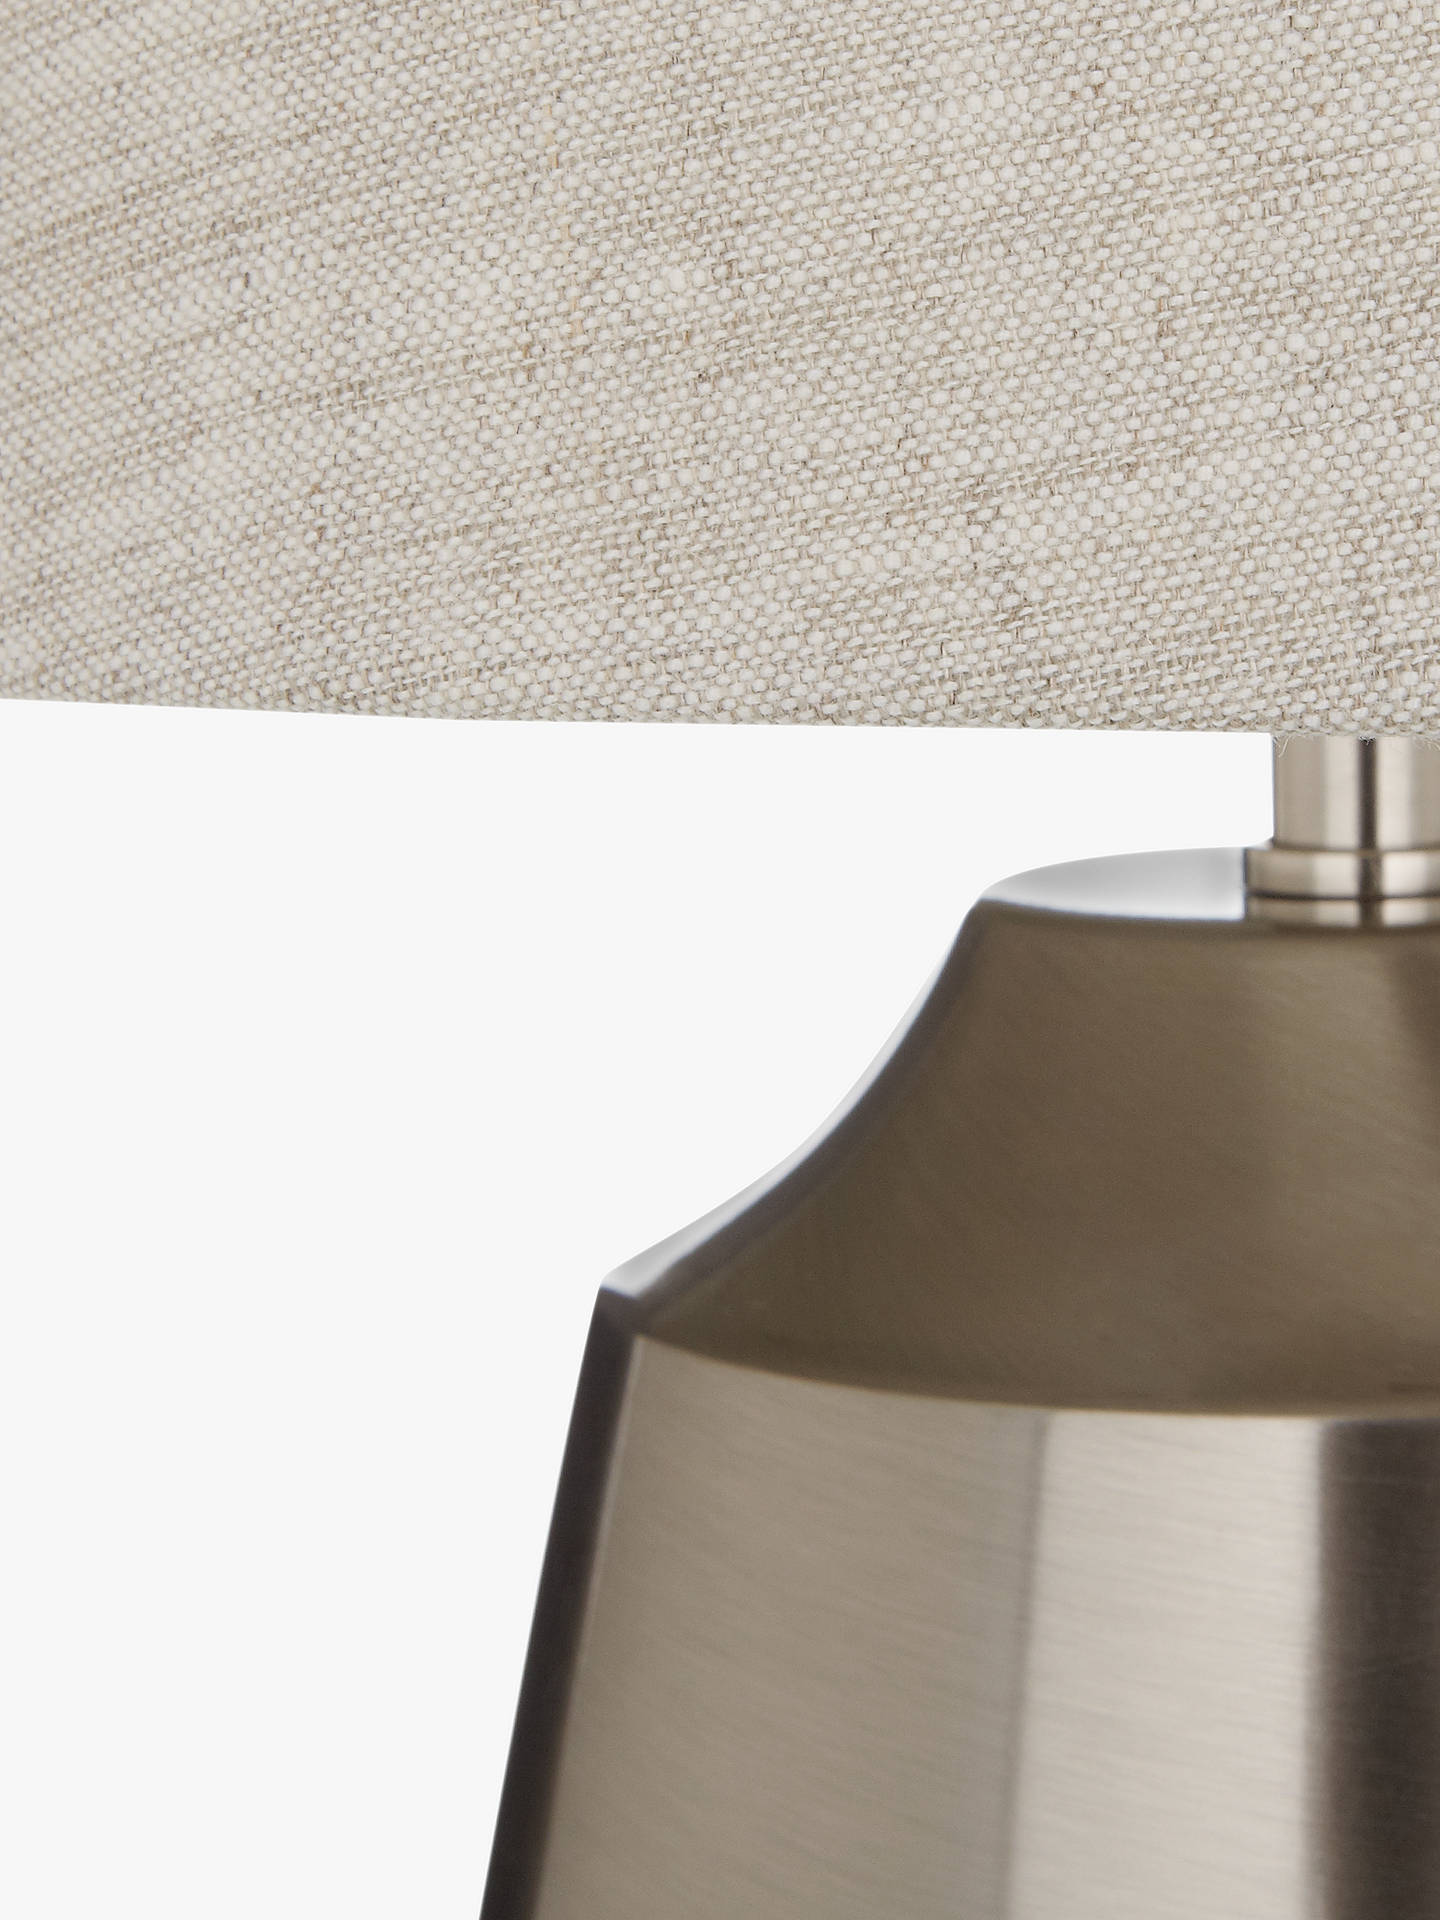 BuyJohn Lewis & Partners Lupin Table Touch Lamp, Satin Nickel Online at johnlewis.com